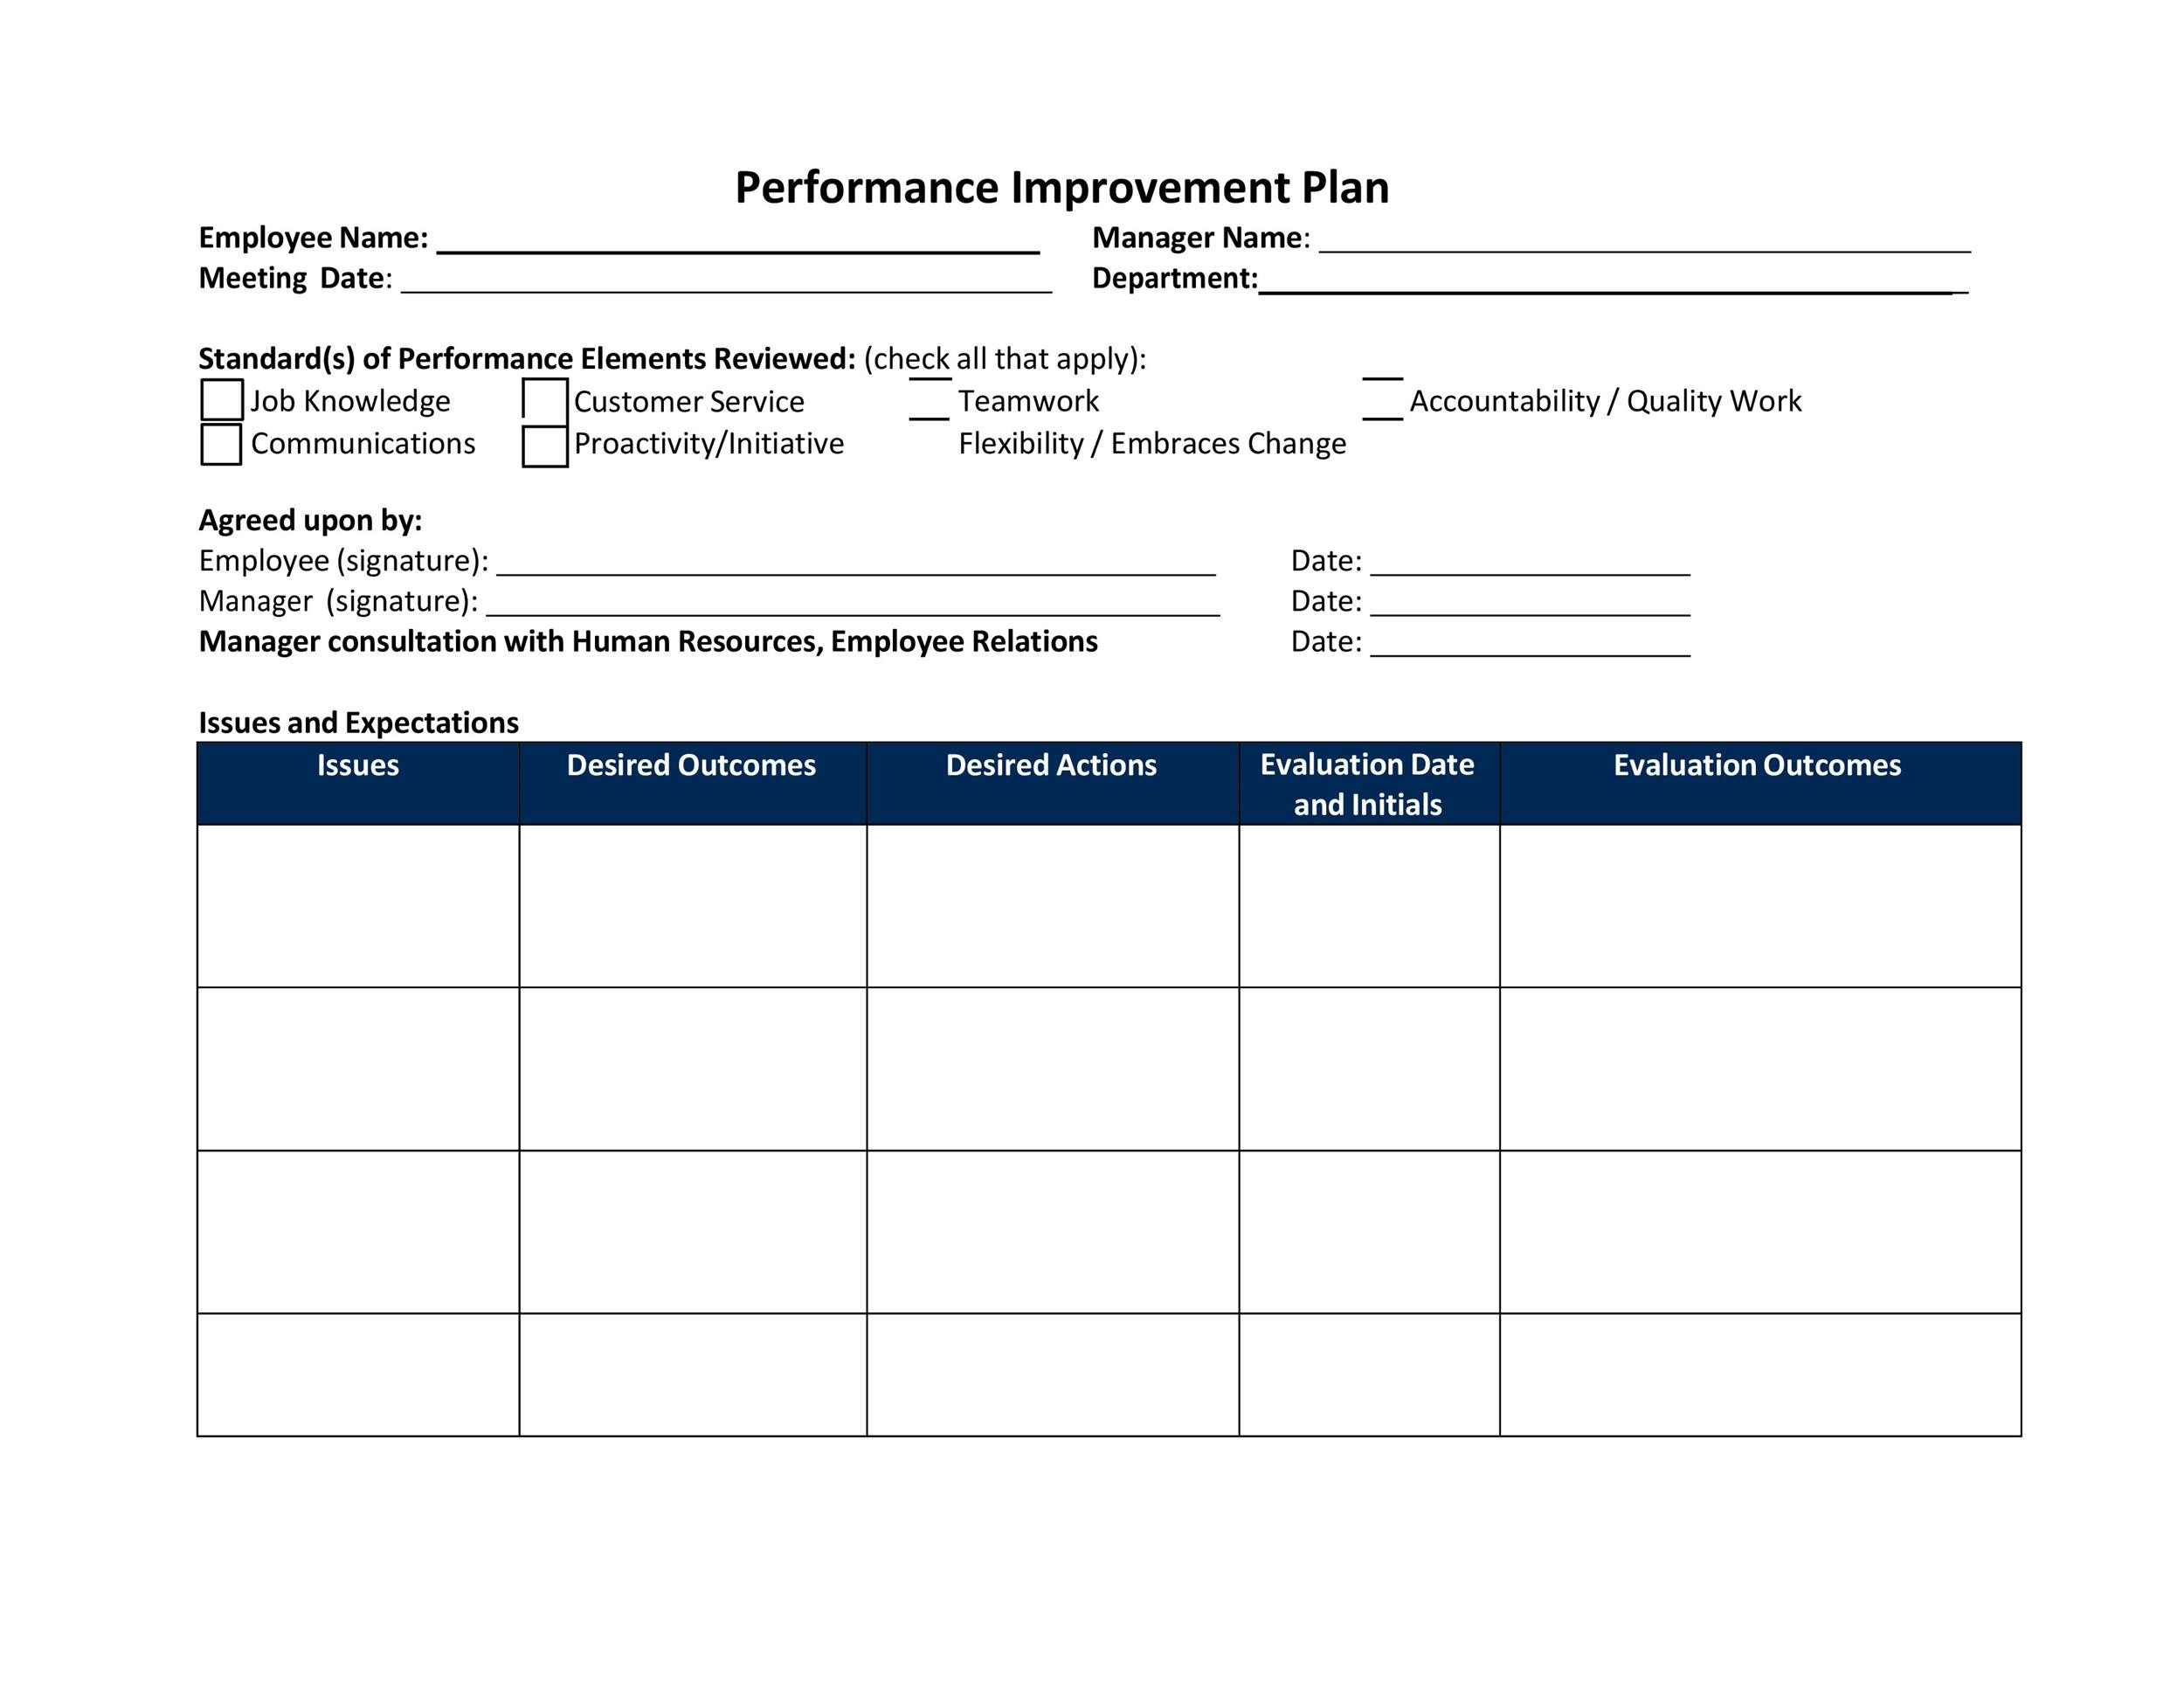 Performance Plan Individual Performance Scorecard Performance – Employee Action Plan Template